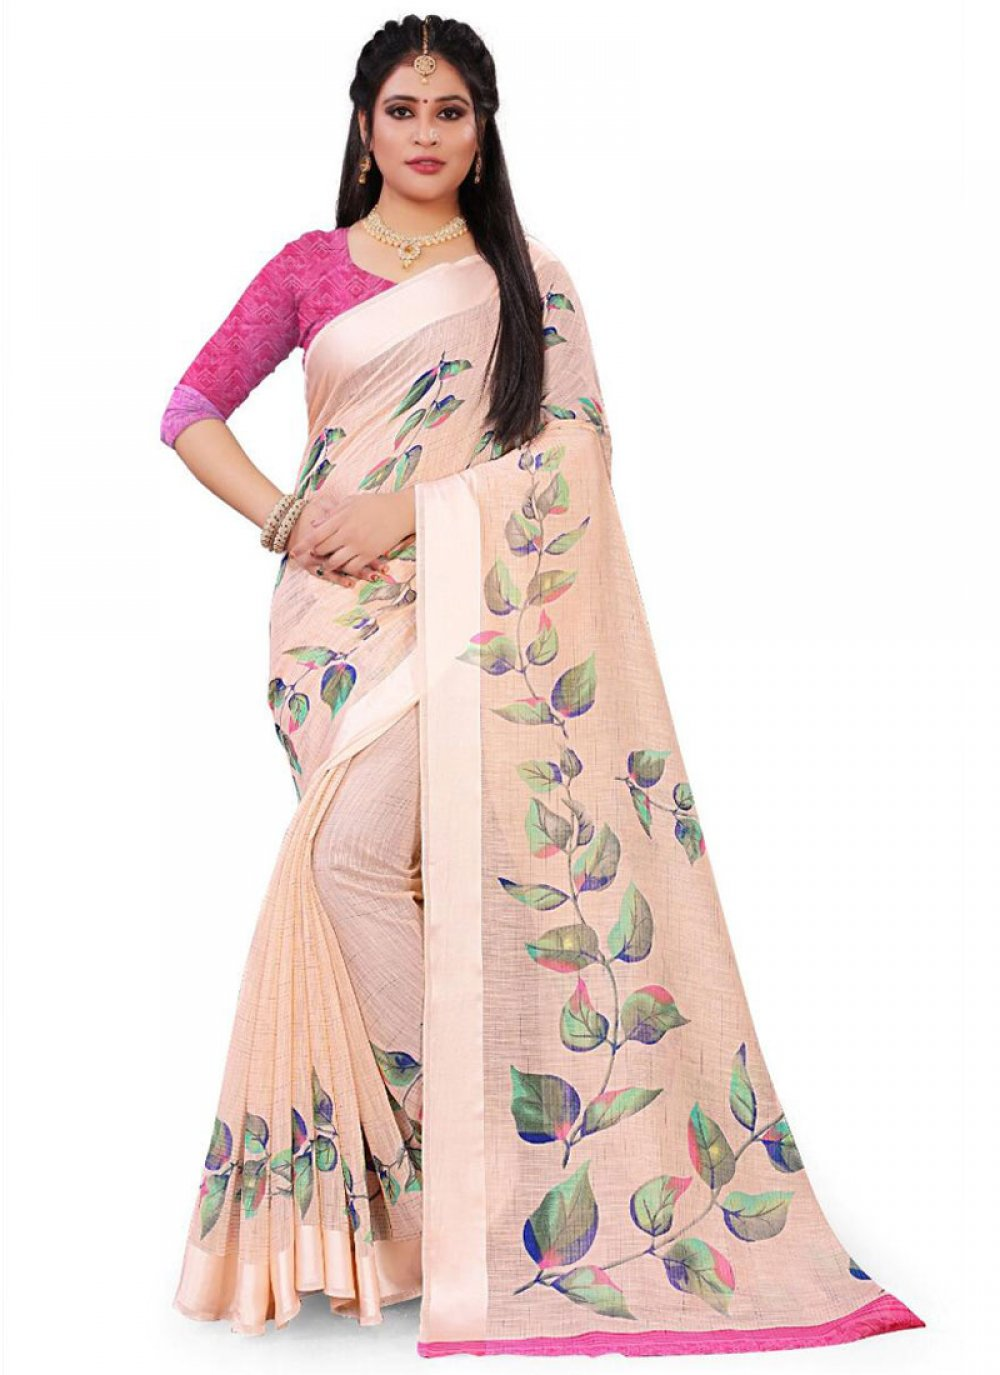 Saree Floral Print Linen in Pink